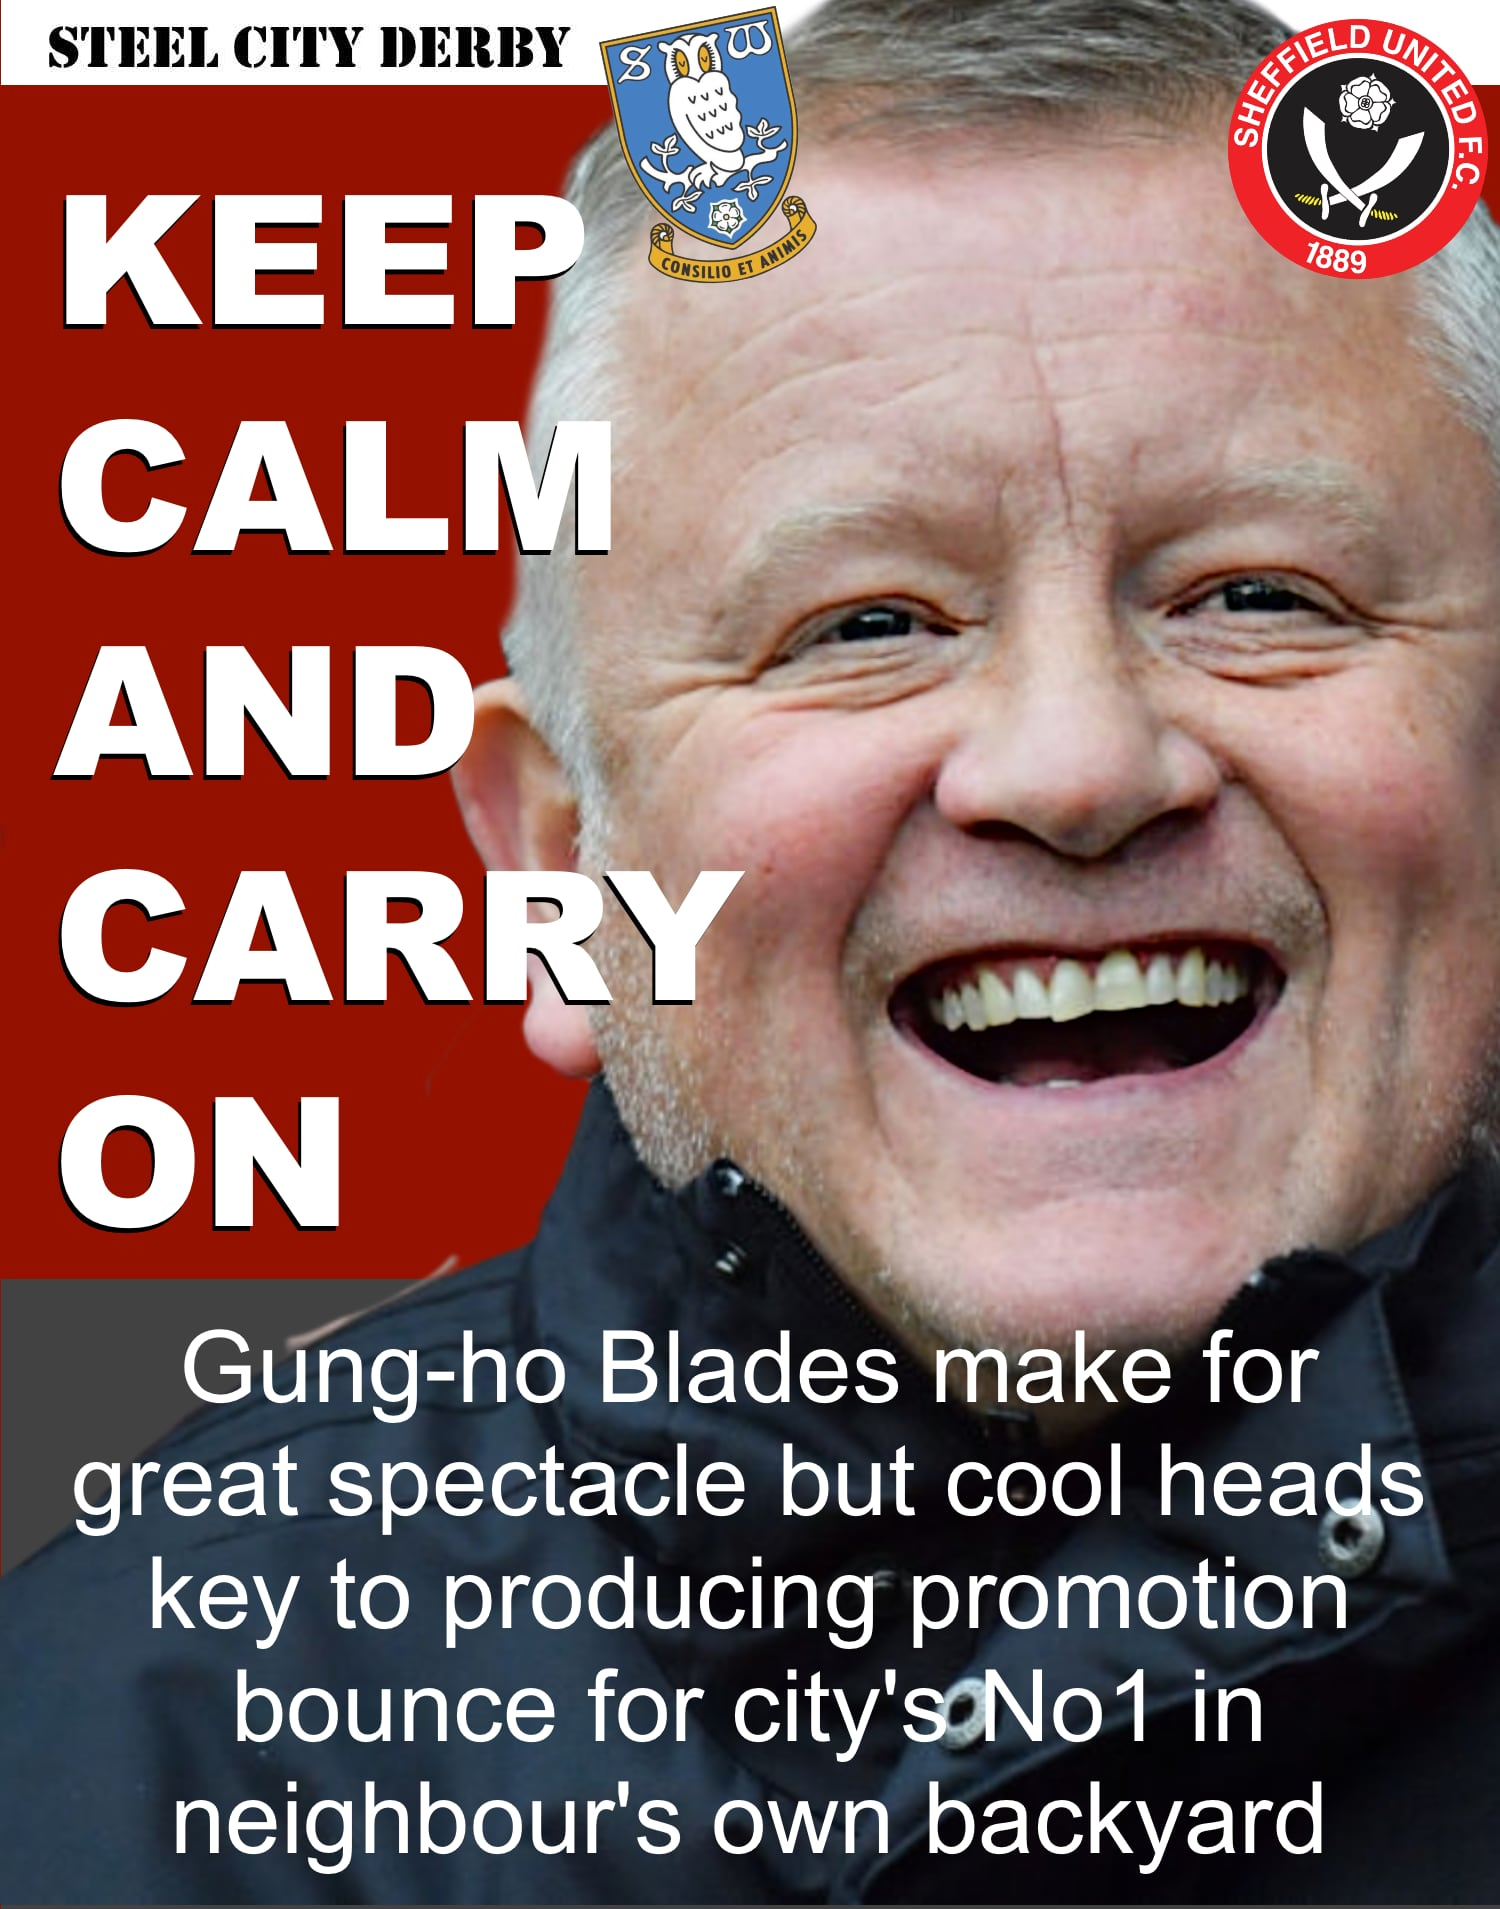 Steel City Derby: Sheffield United so superior to neighbours Sheffield Wednesday but need to keep cool heads to get promotion bounce at Hillsborough